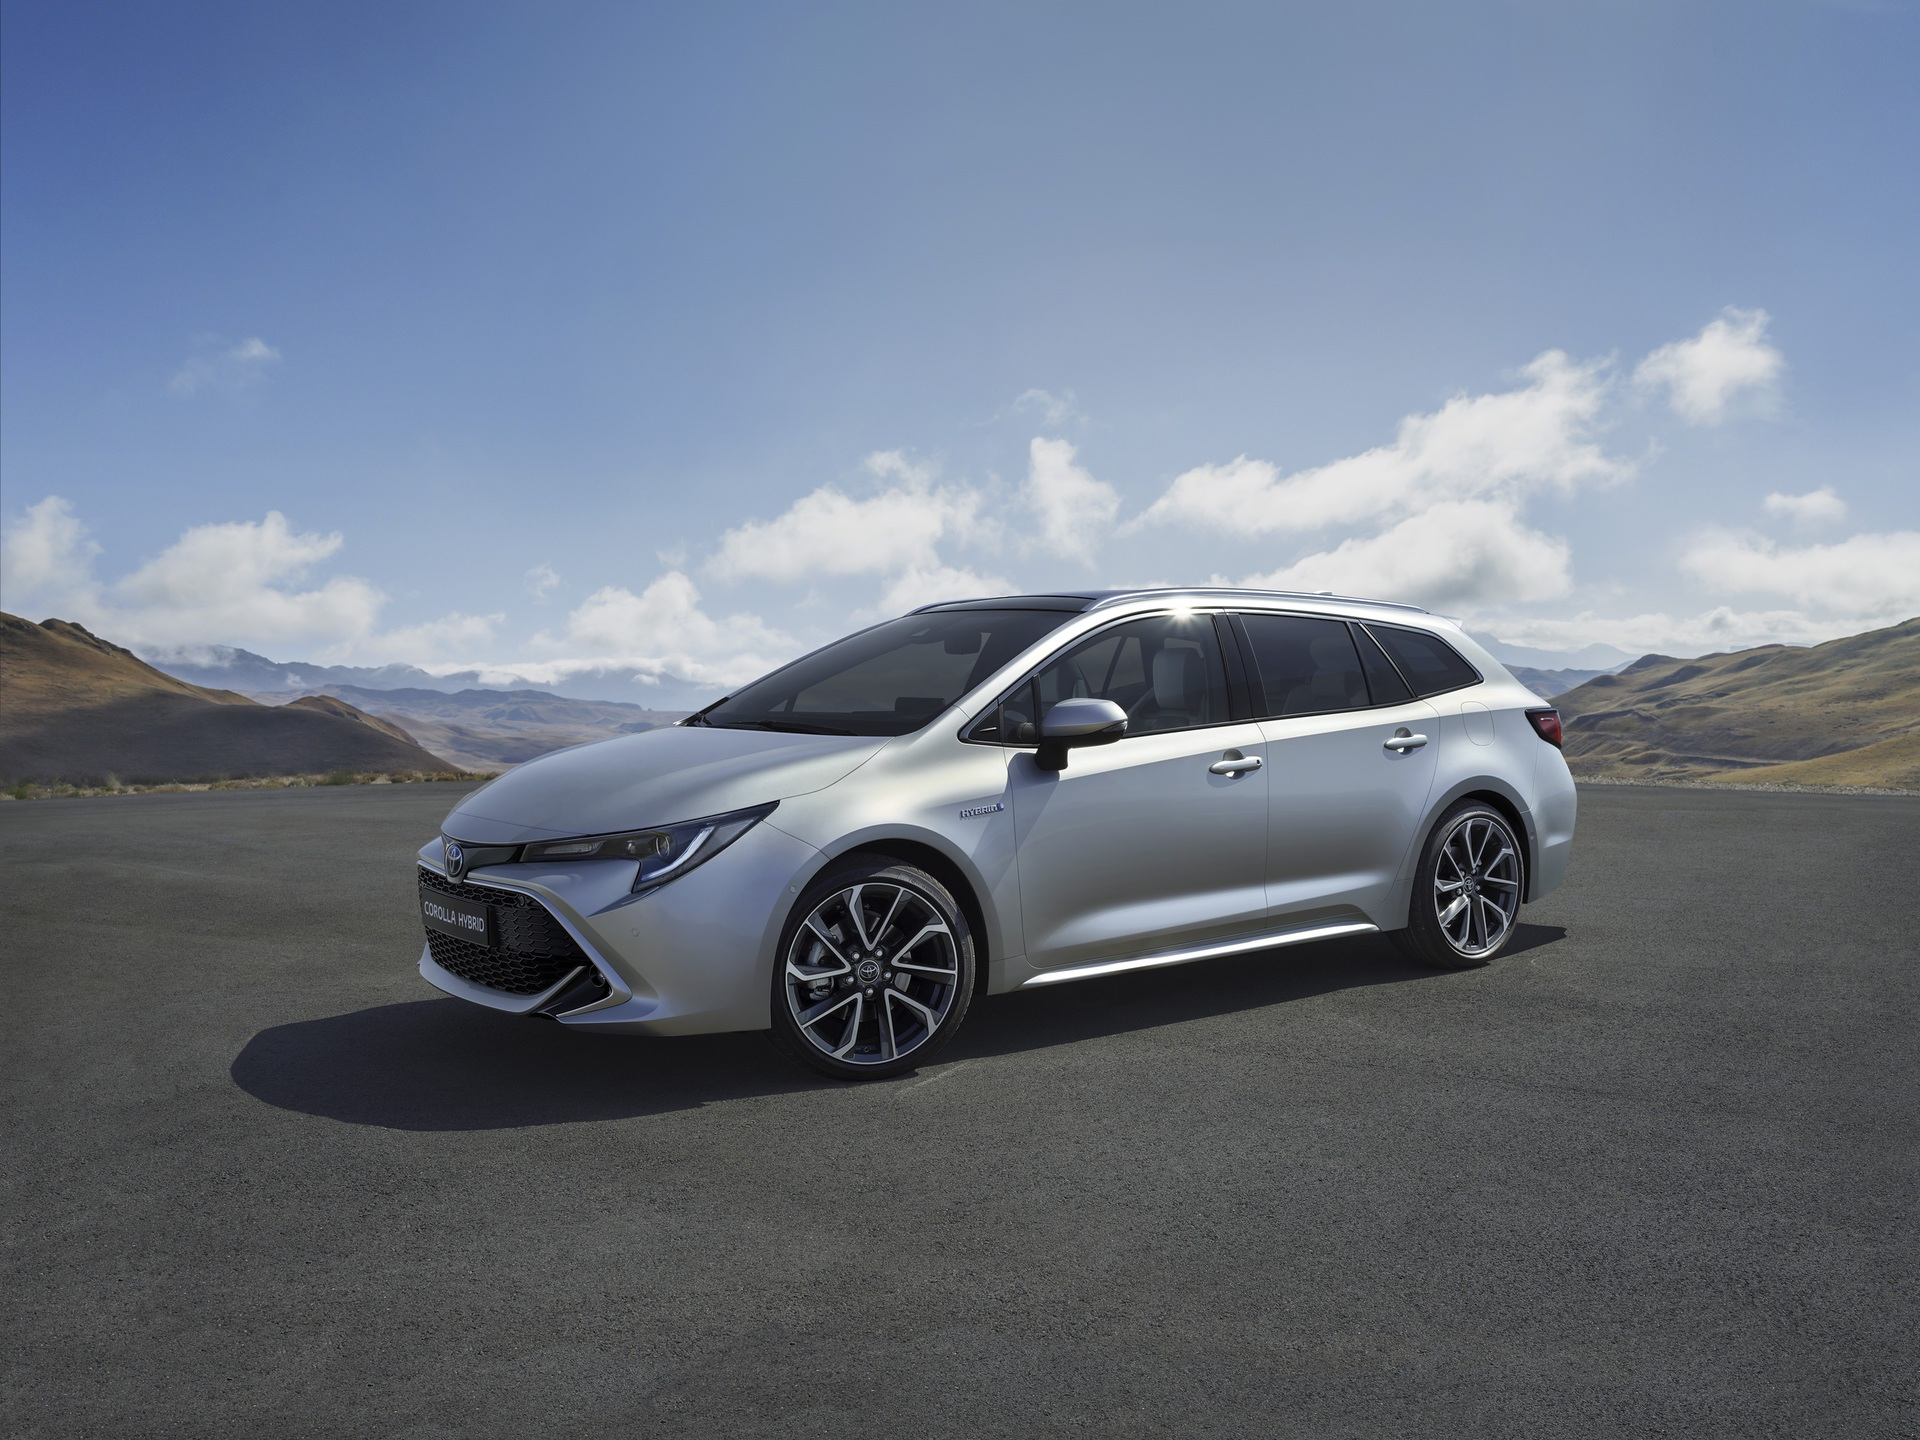 2019_Toyota_Corolla_Touring_Sports_01